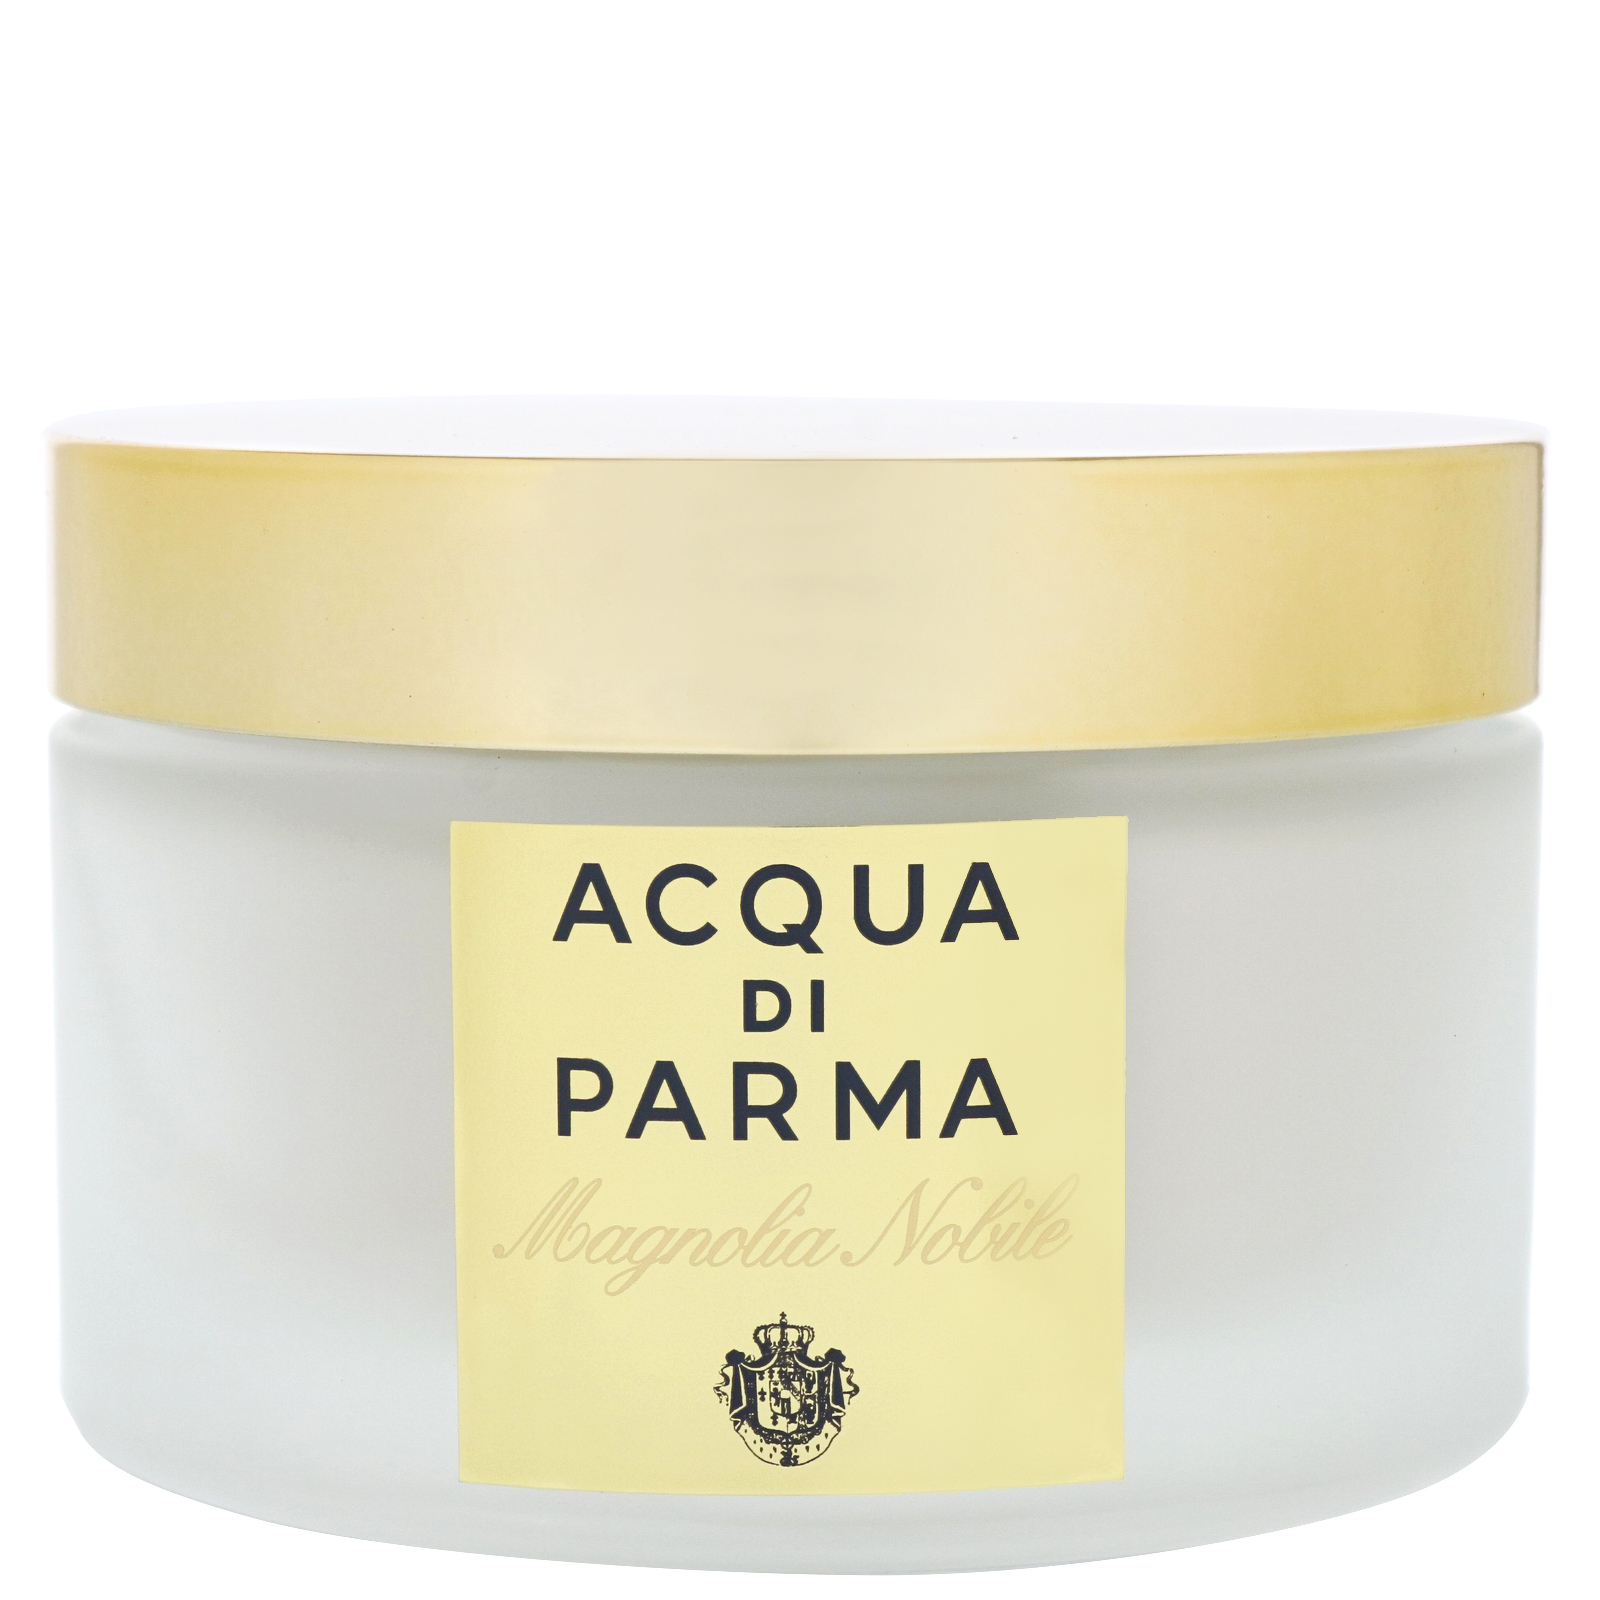 Acqua Di Parma Magnolia Nobile Sublime Body Cream 150g